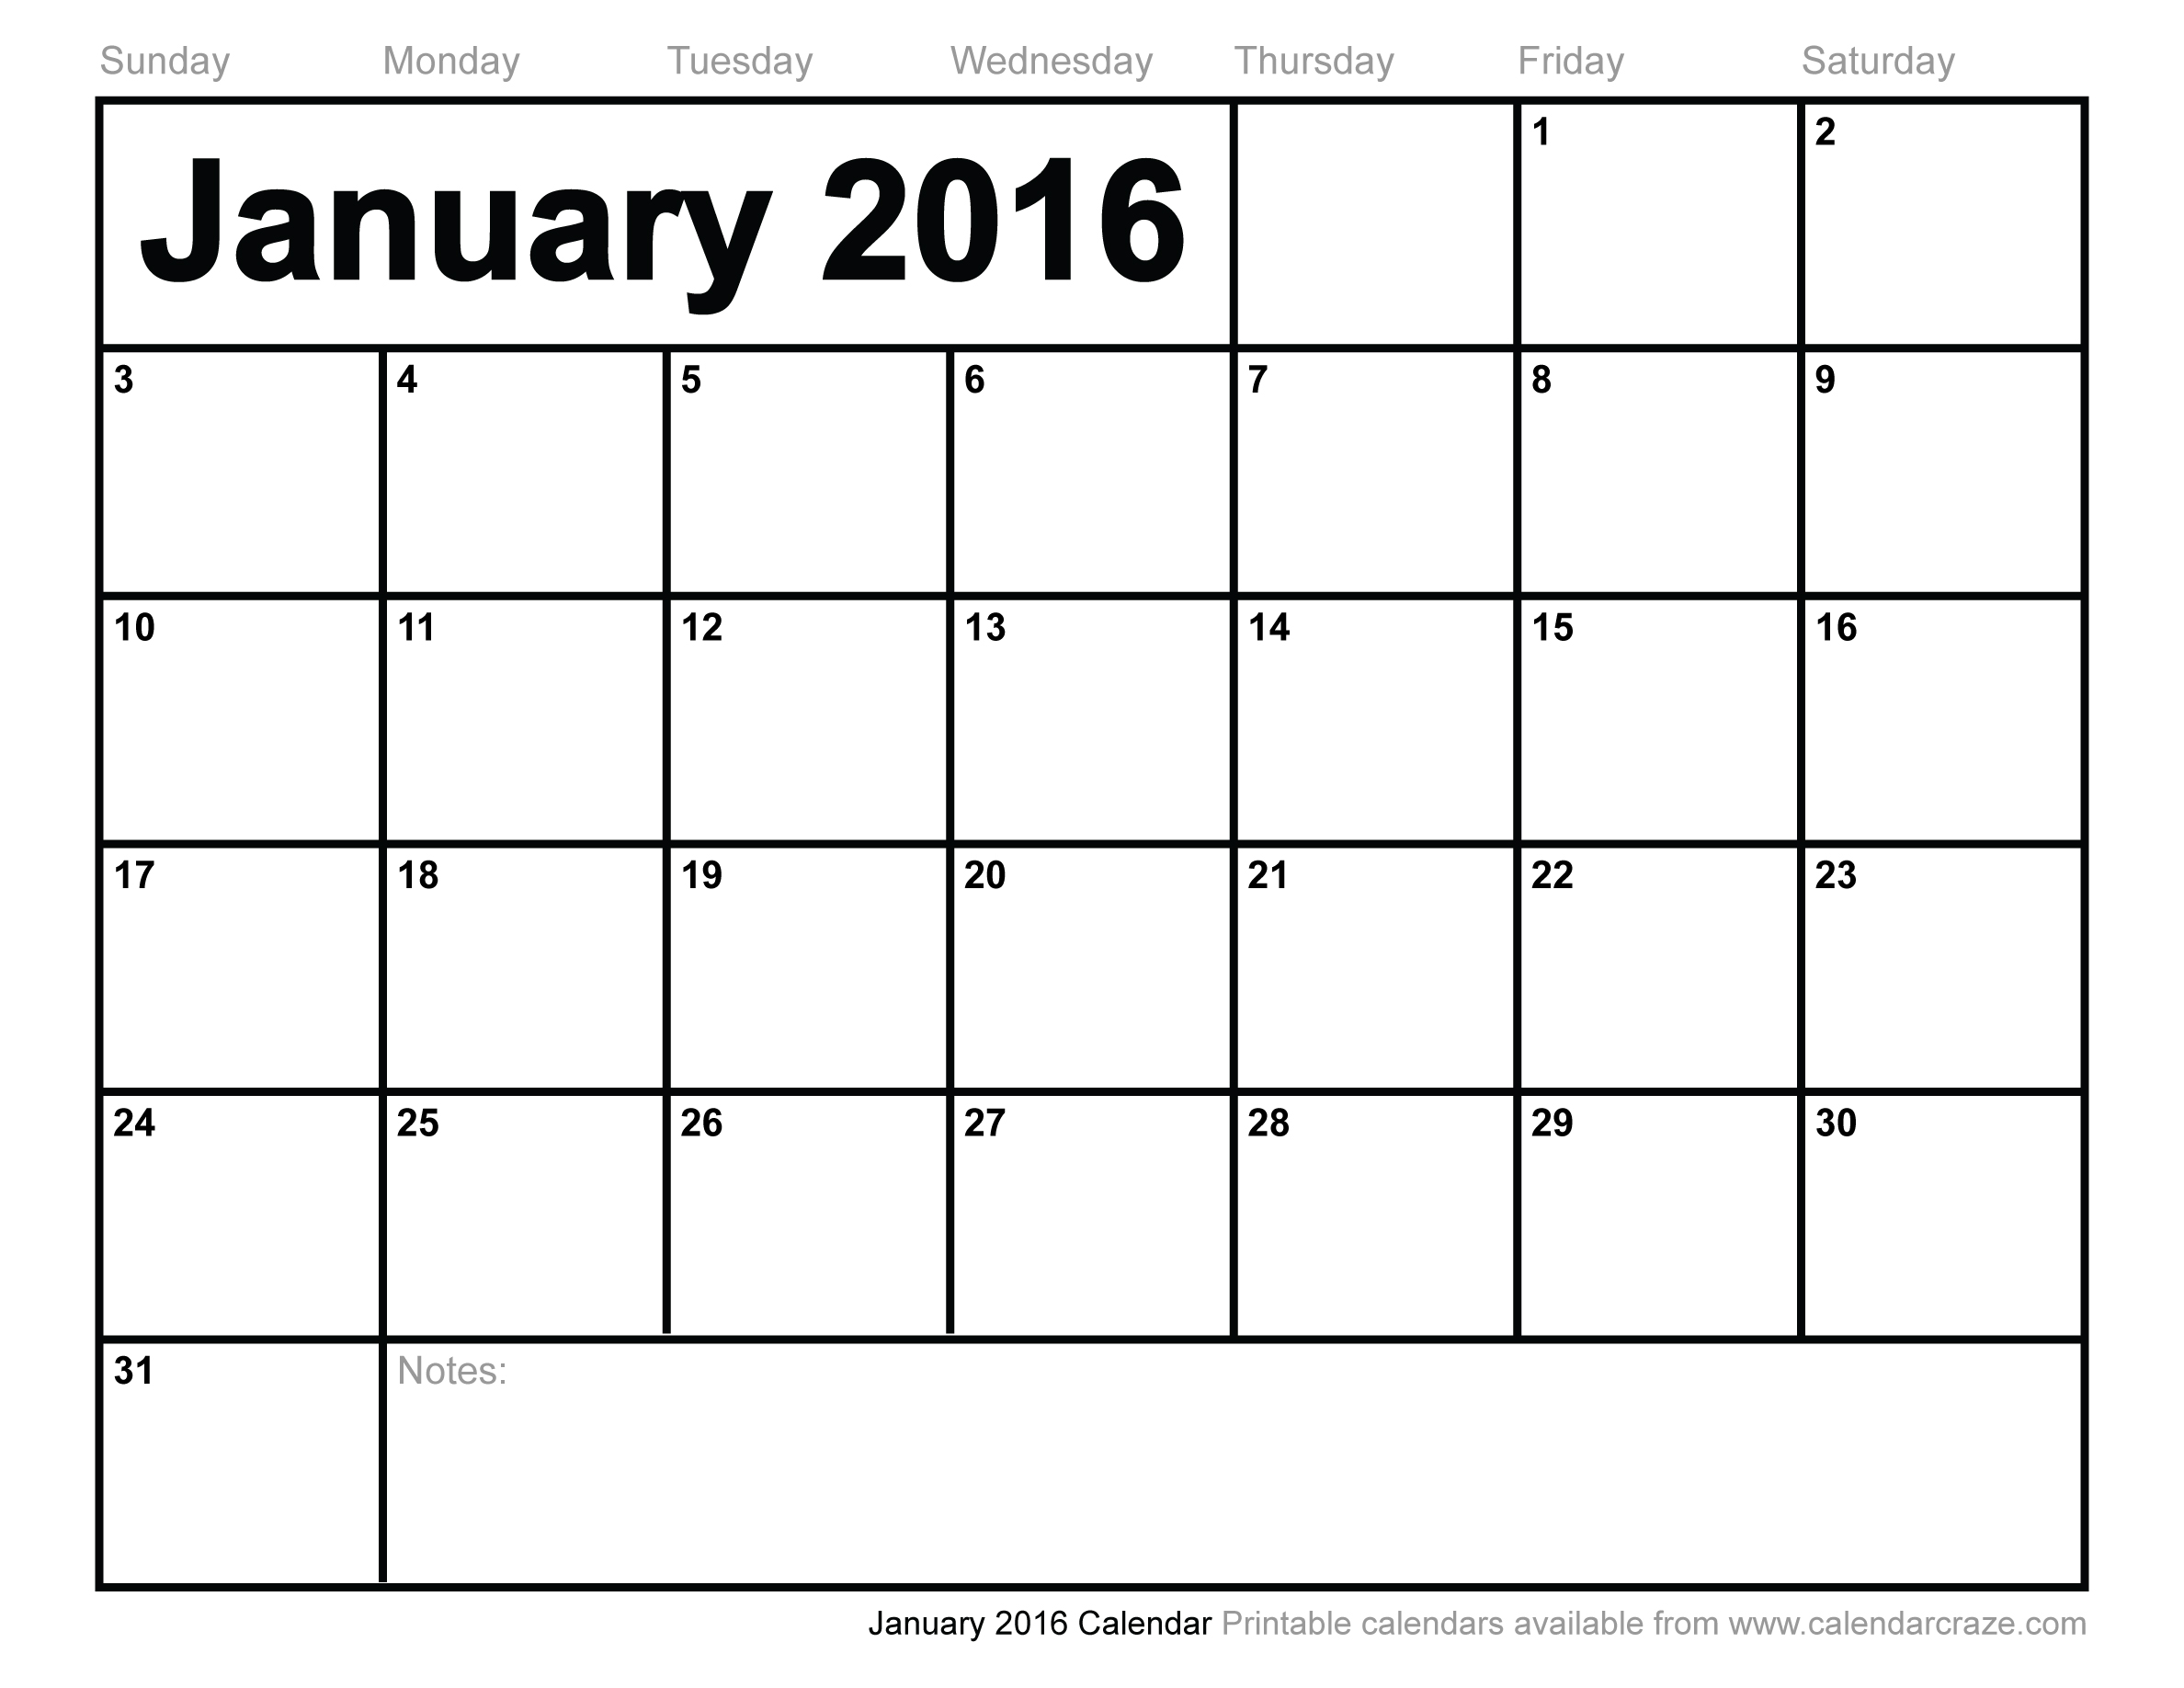 7 Images of Calendar Printable January 2016